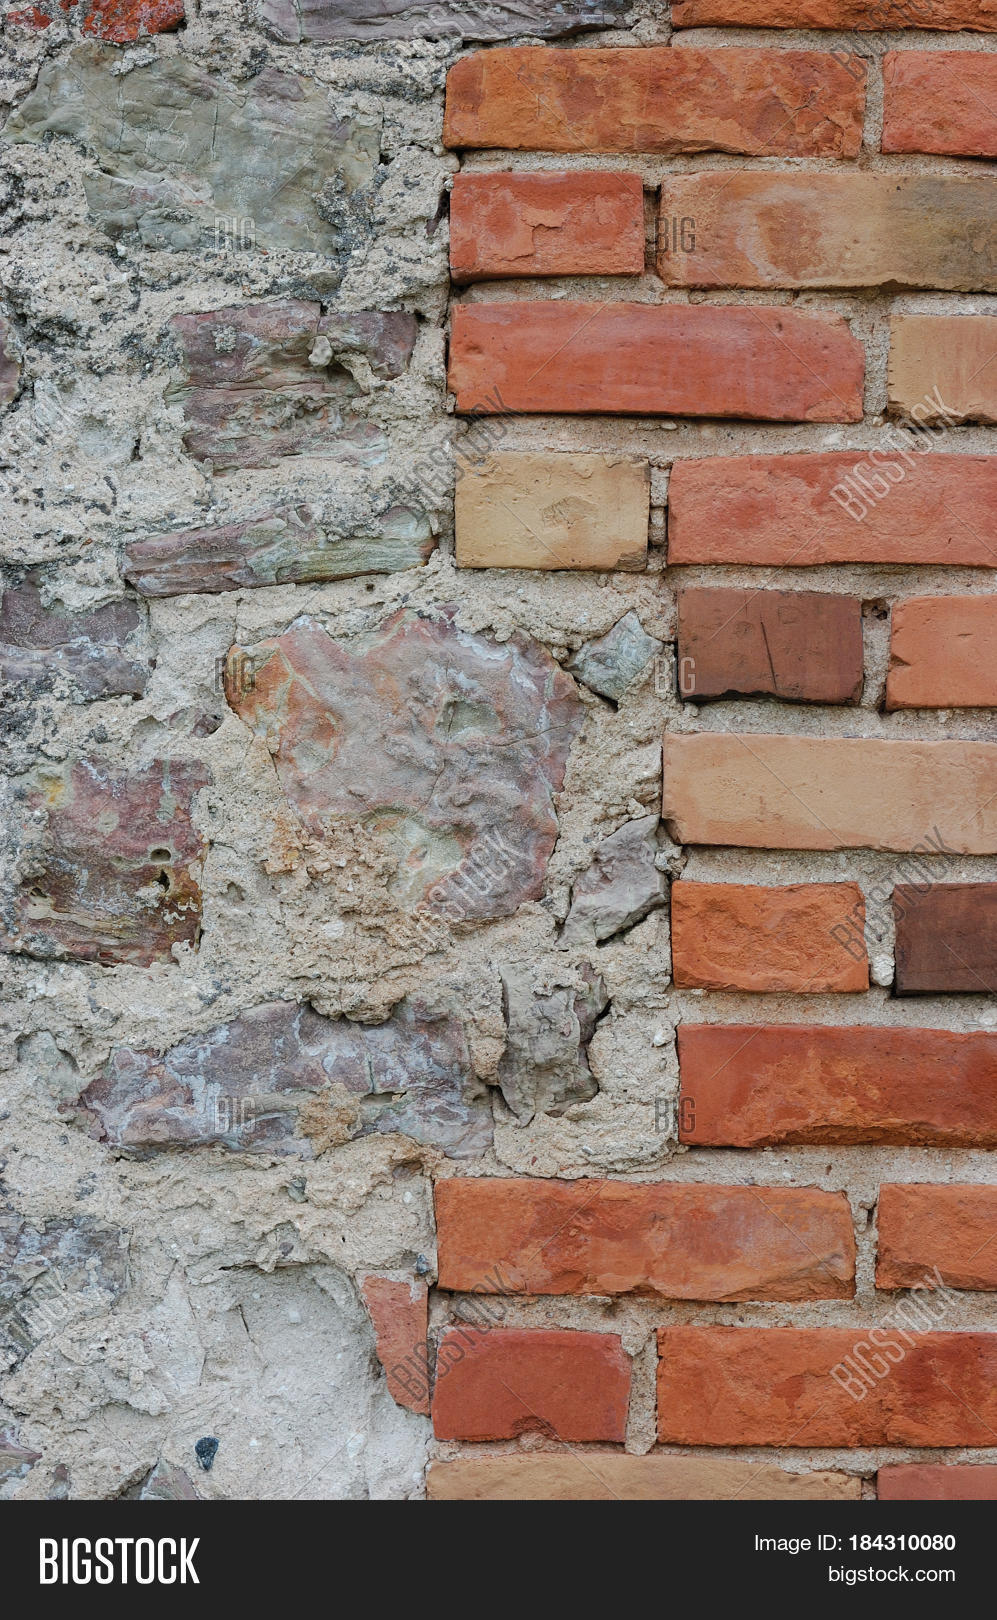 Stone Wall Background Closeup Vertical Plastered Grunge Red Brick Stonewall Beige Limestone Pattern Old Aged Weathered